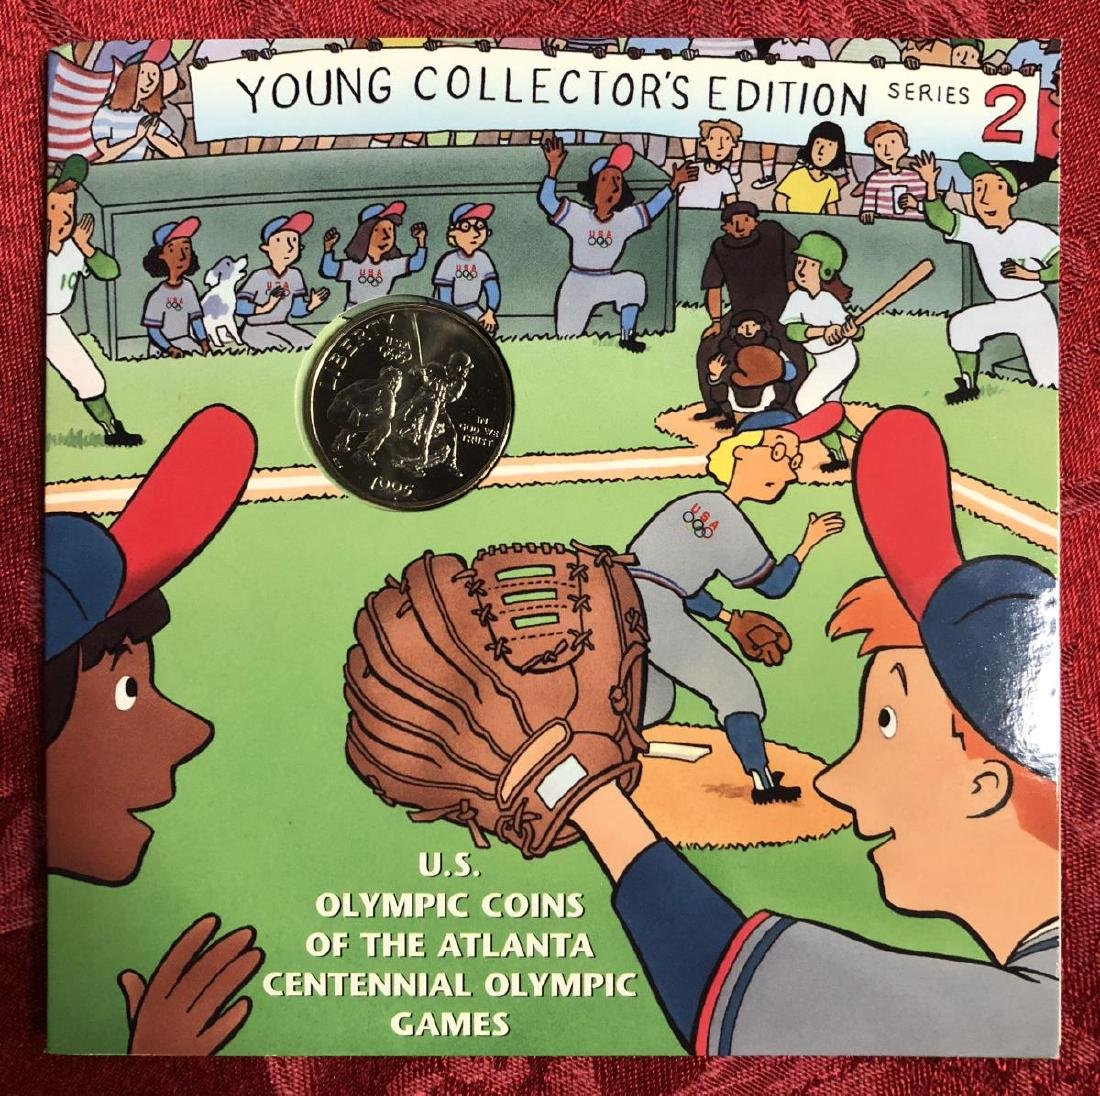 1995-1996 Olympics Young Collectors Coins Set - 4